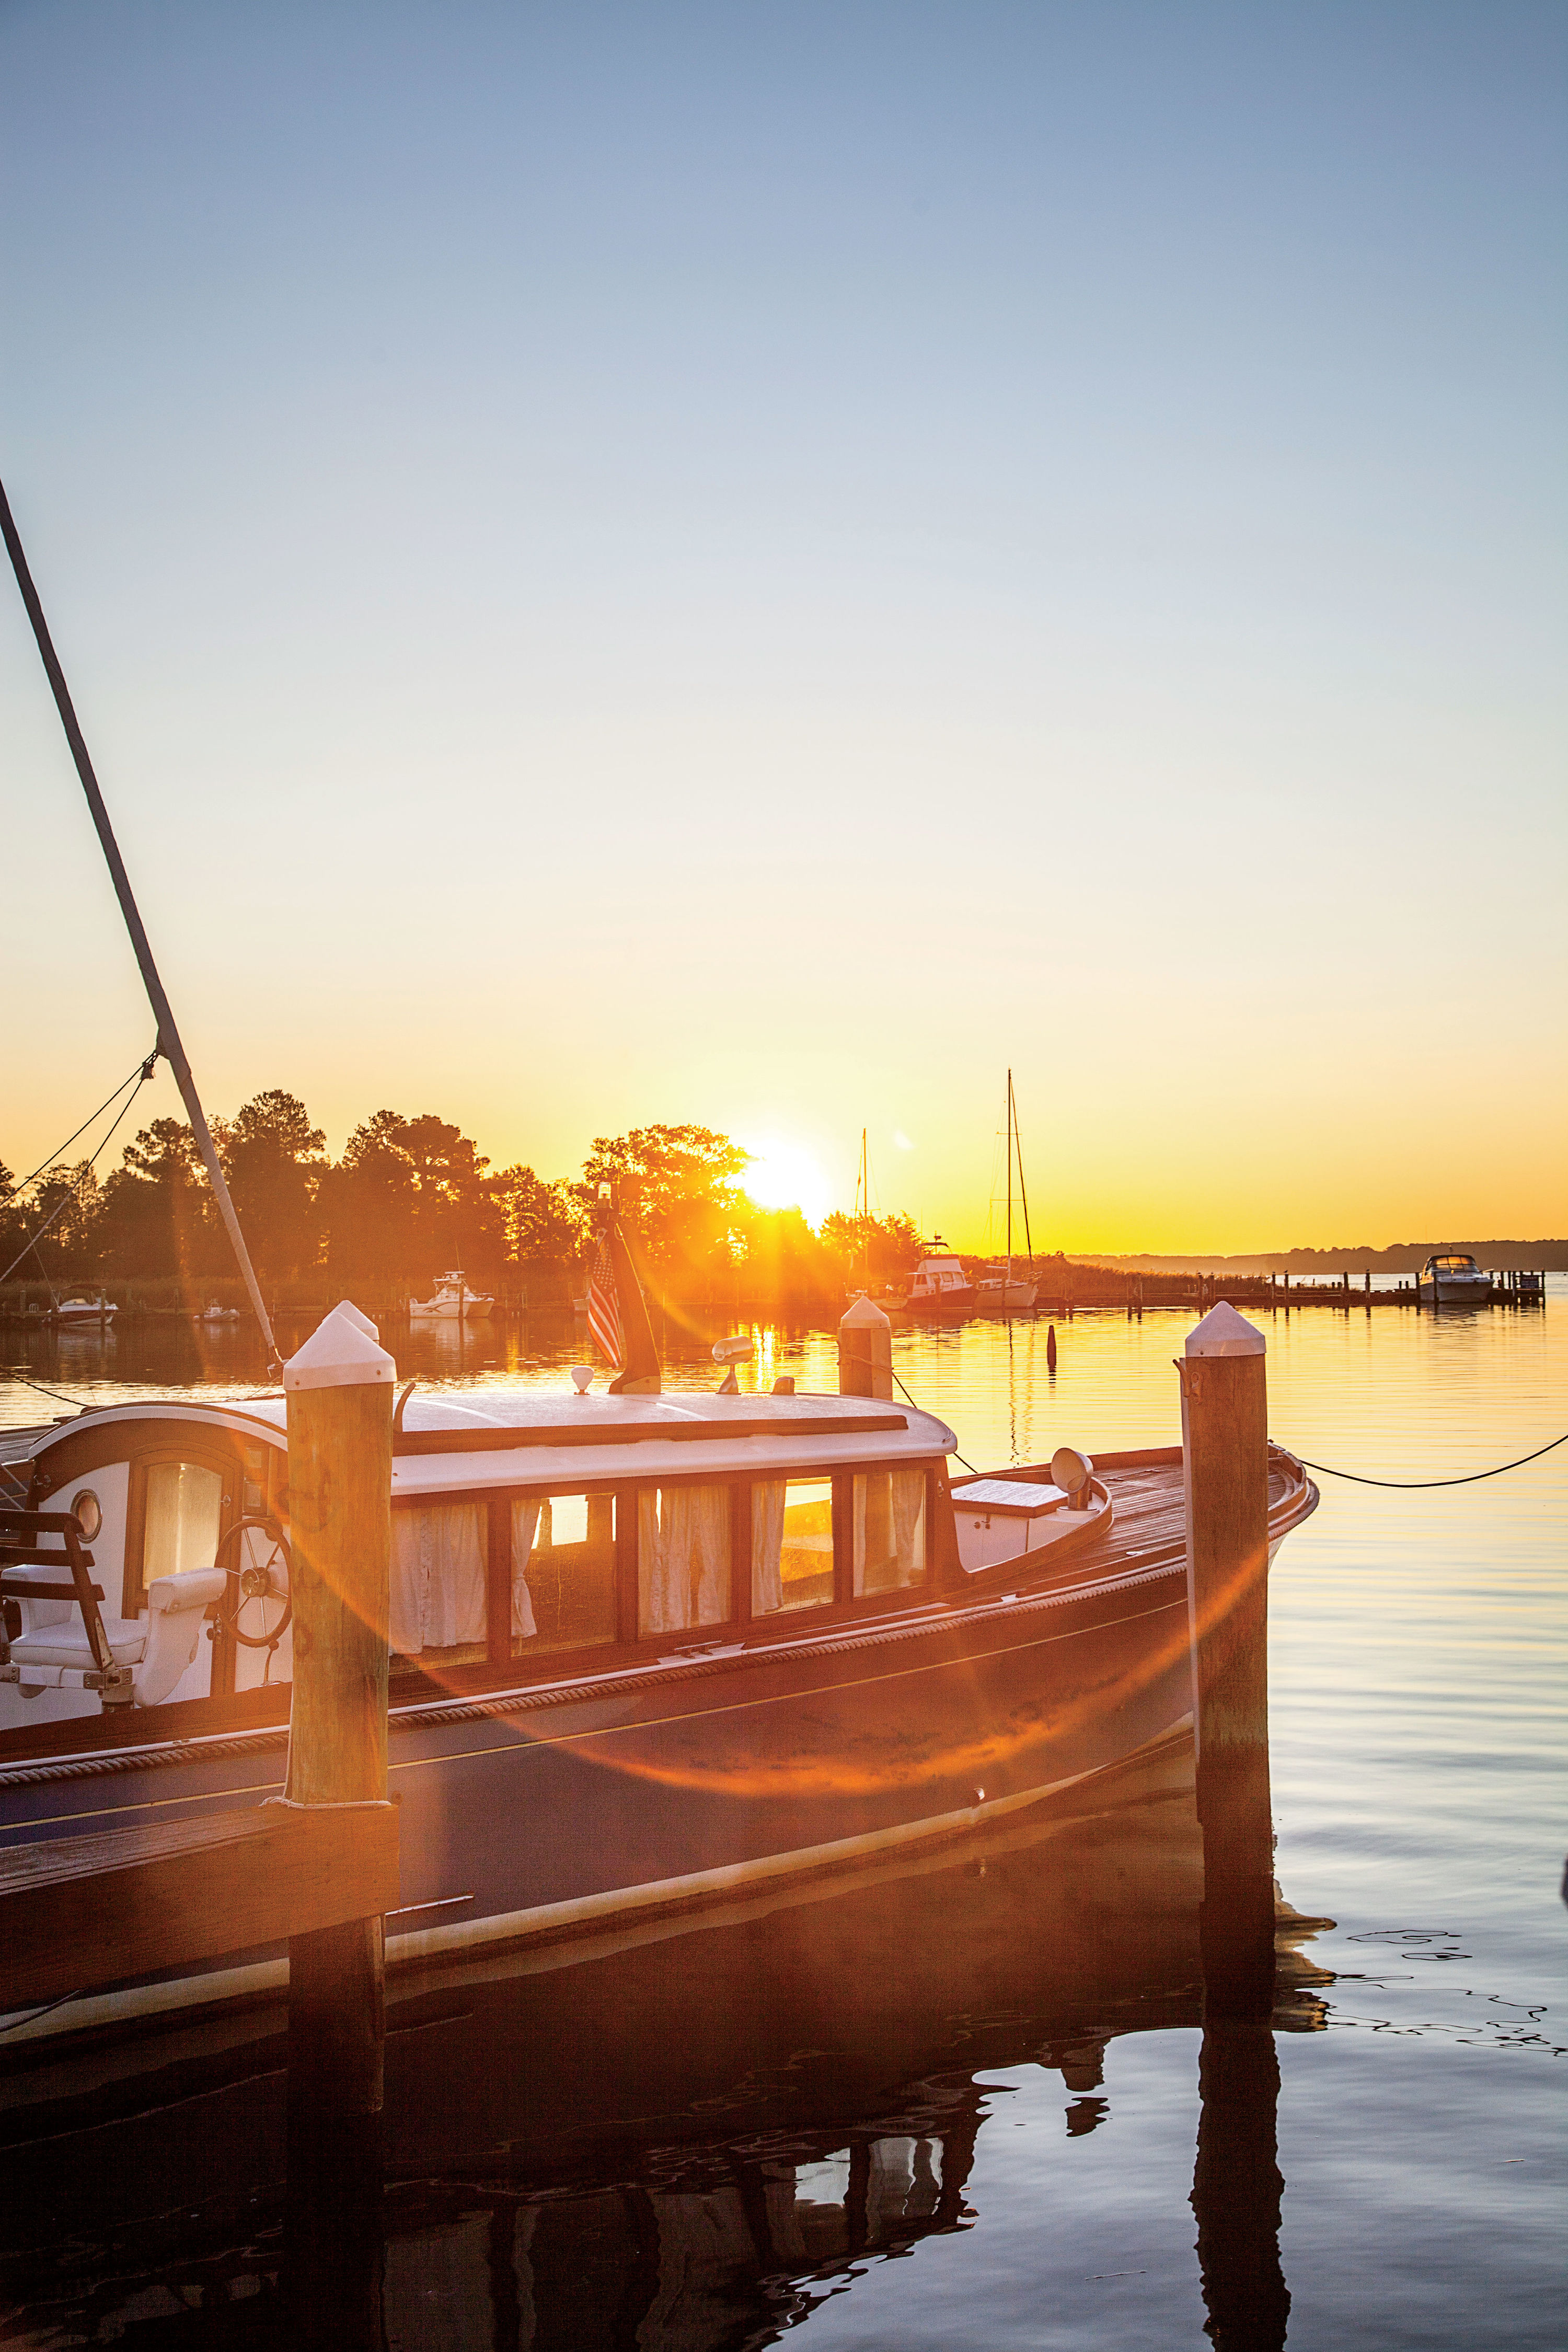 Why You Should Plan a Trip to the Chesapeake This Fall